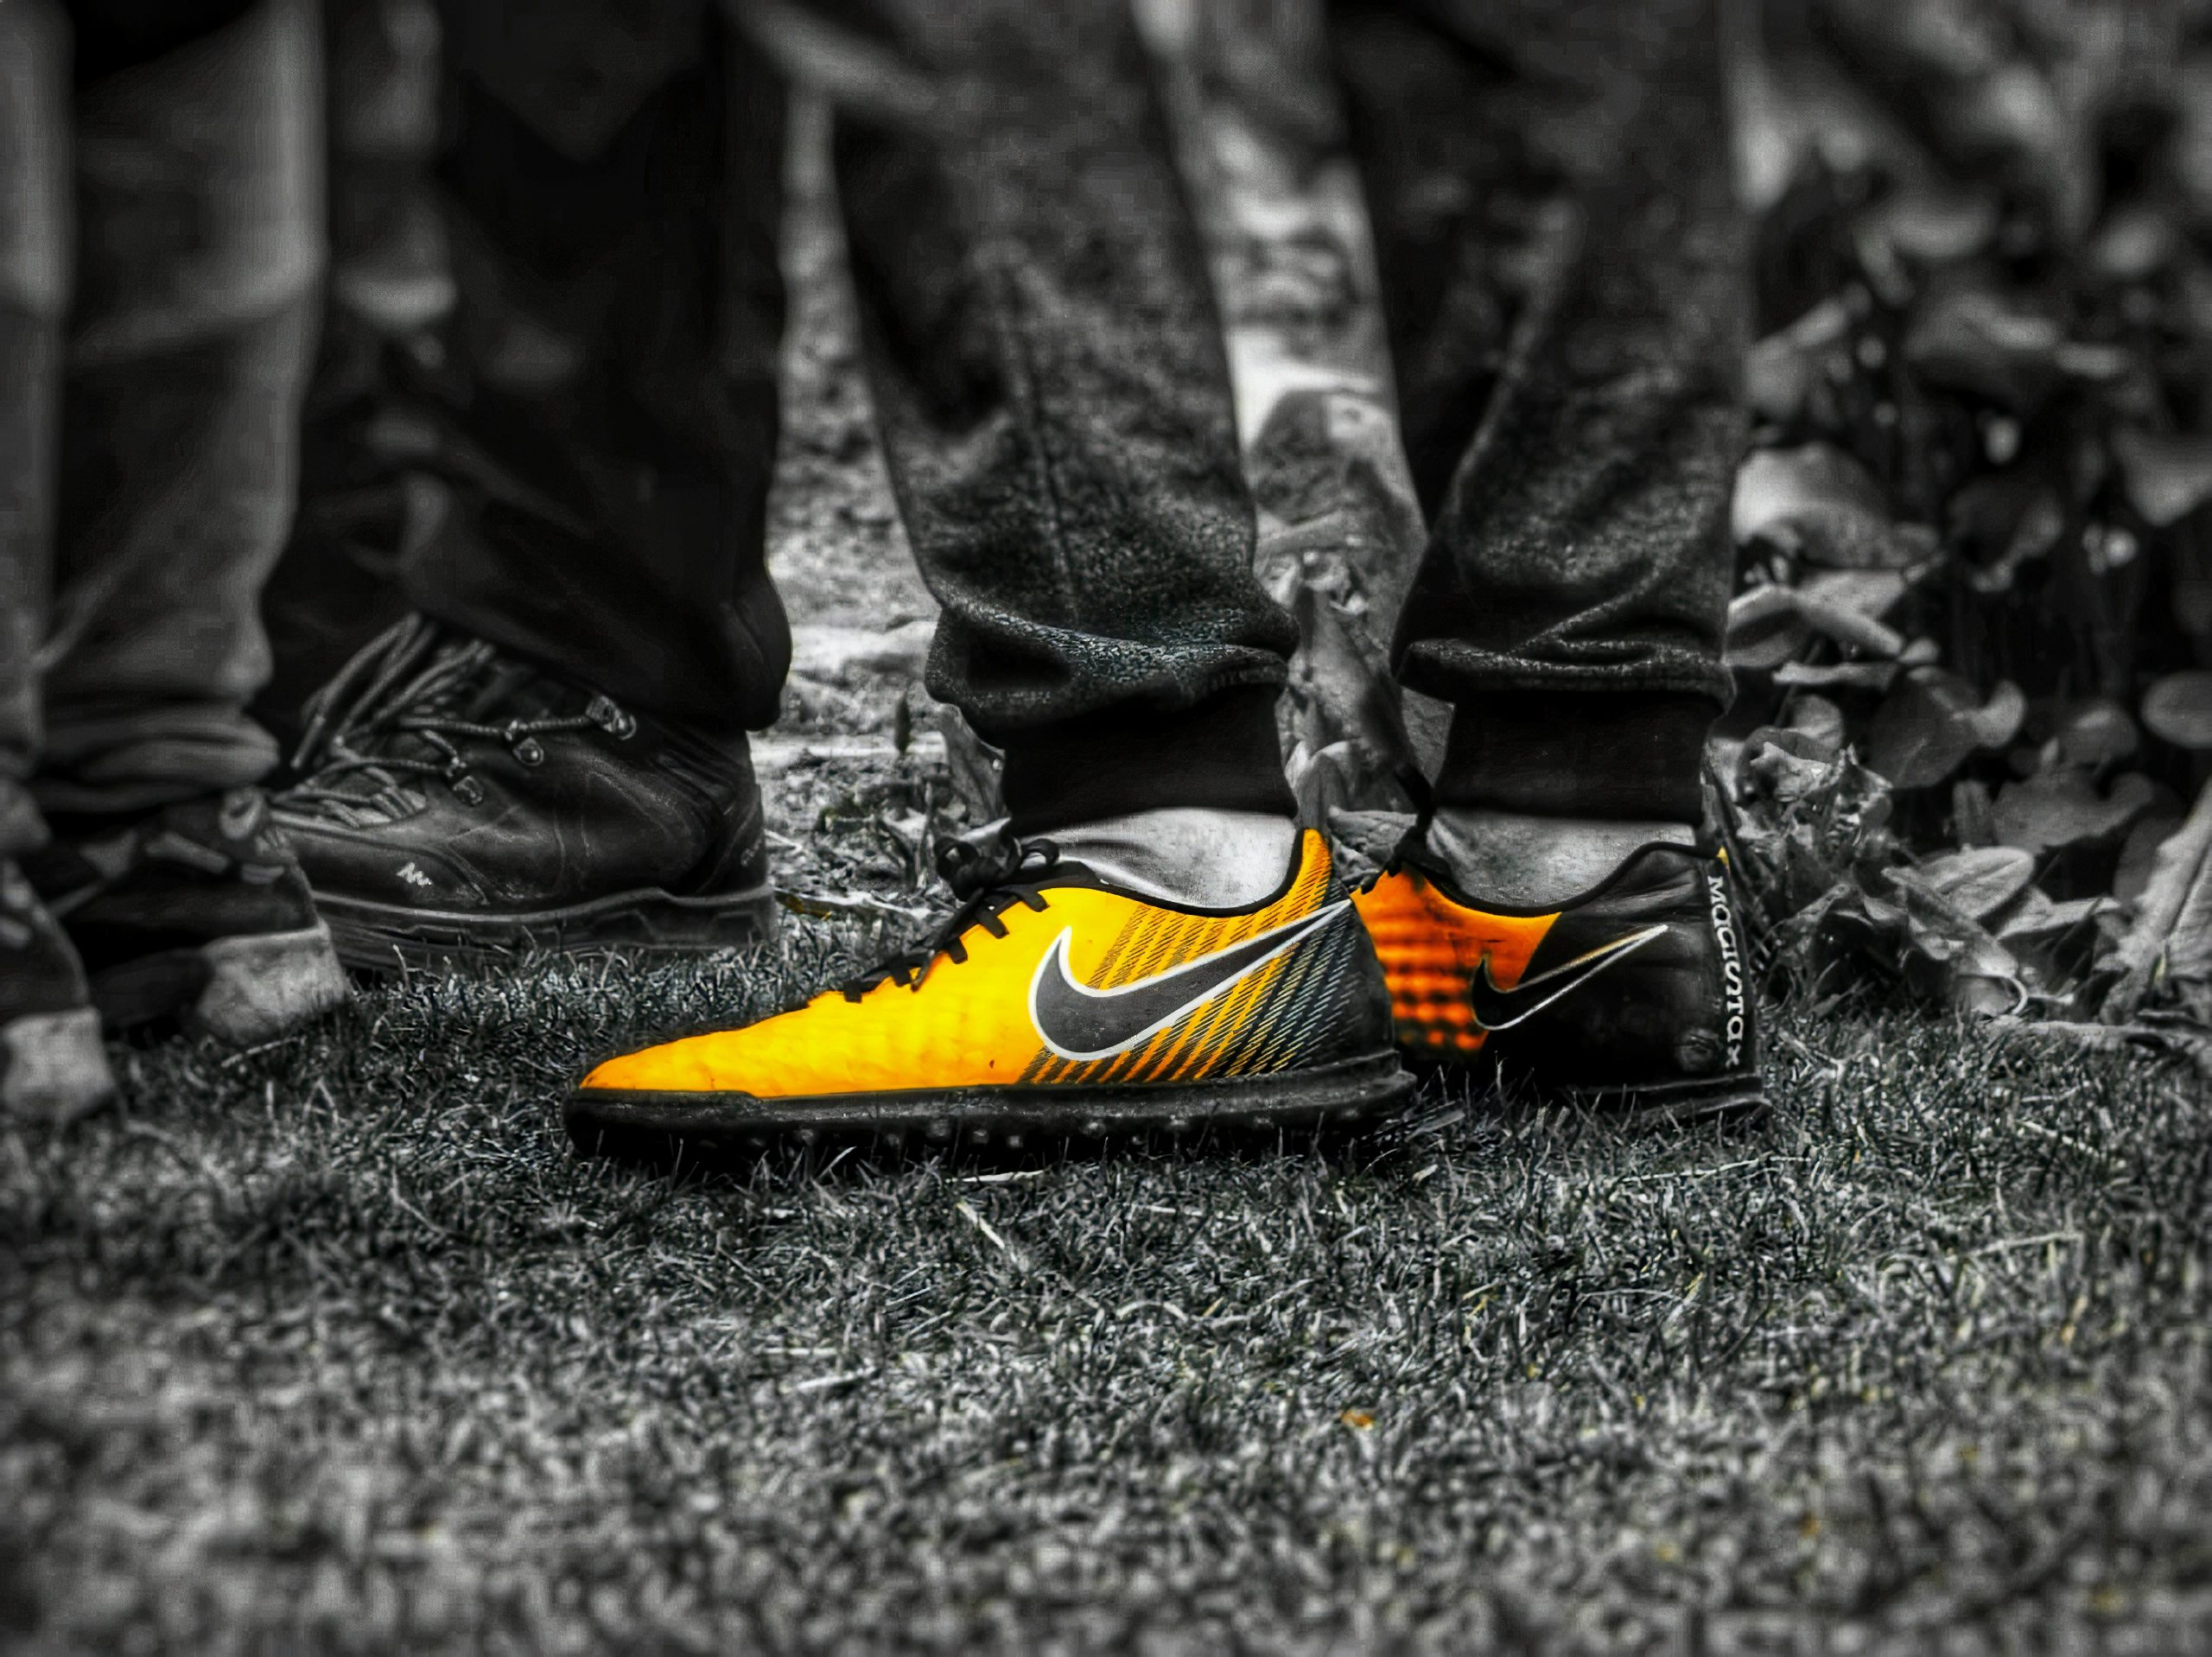 Color-popped vibrant football shoes